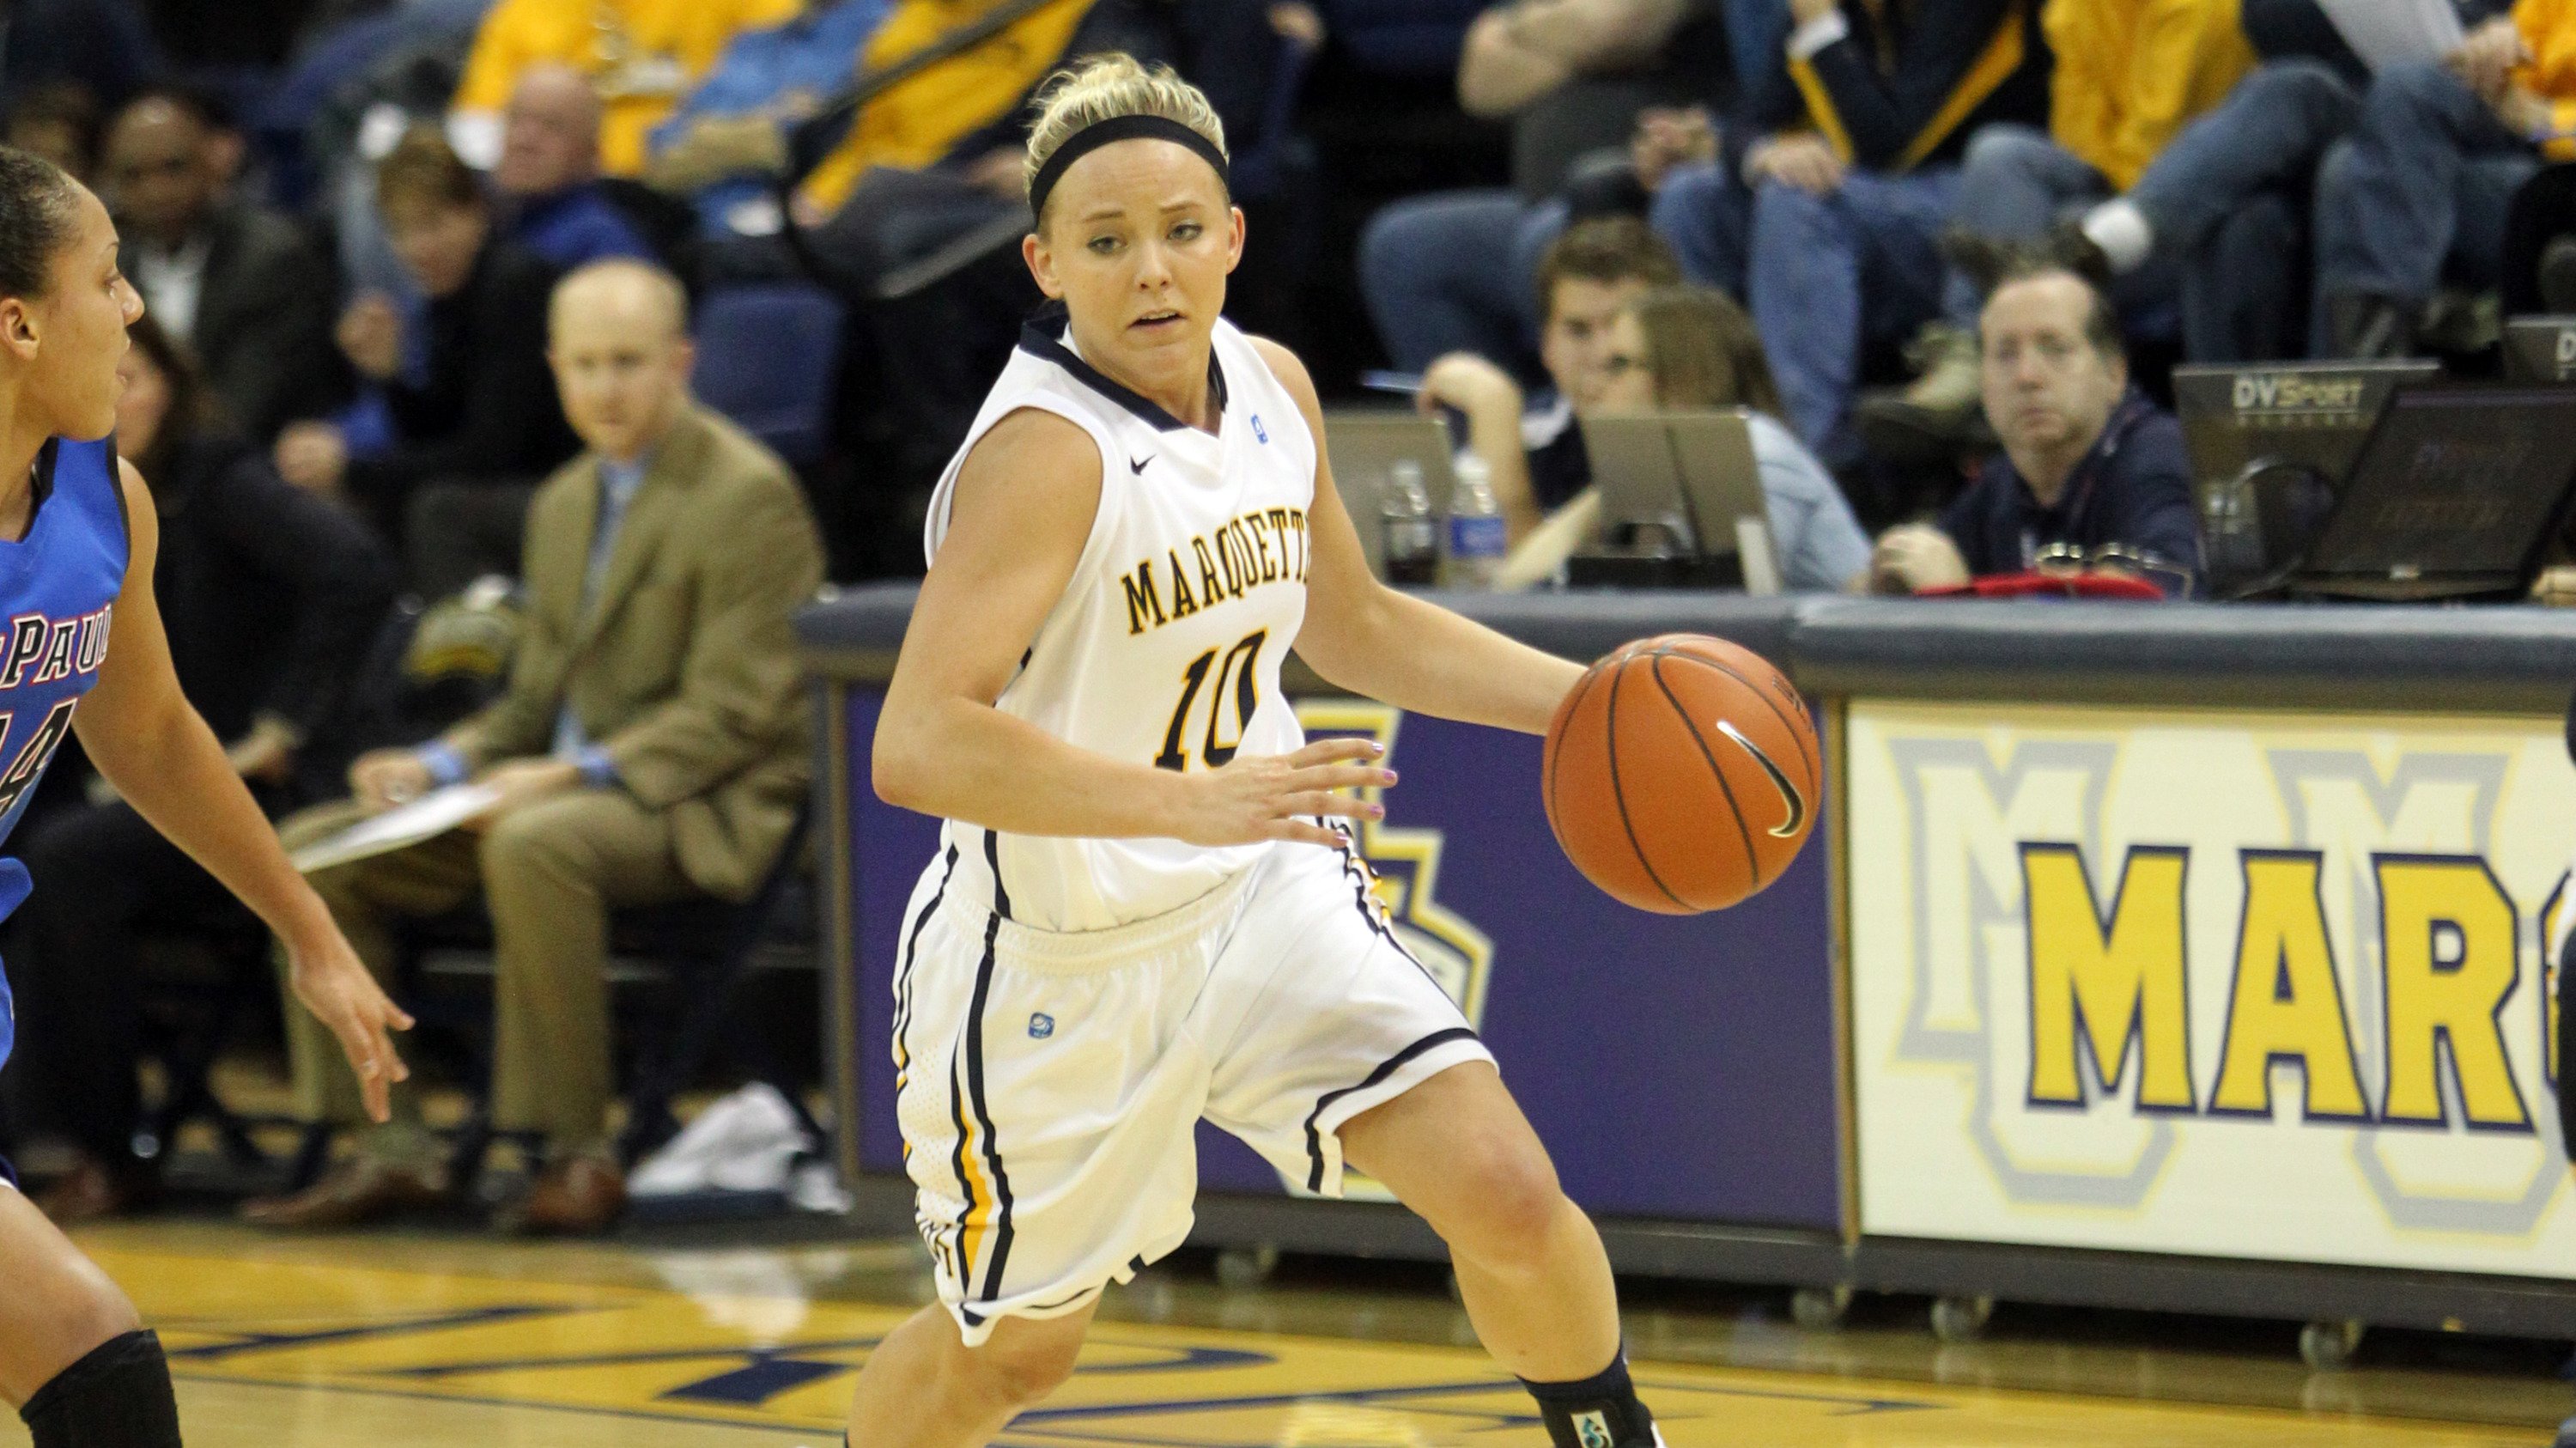 Sophomore guard Brooklyn Pumroy hit 5-of-6 free throws in the final 30 seconds to seal the victory.